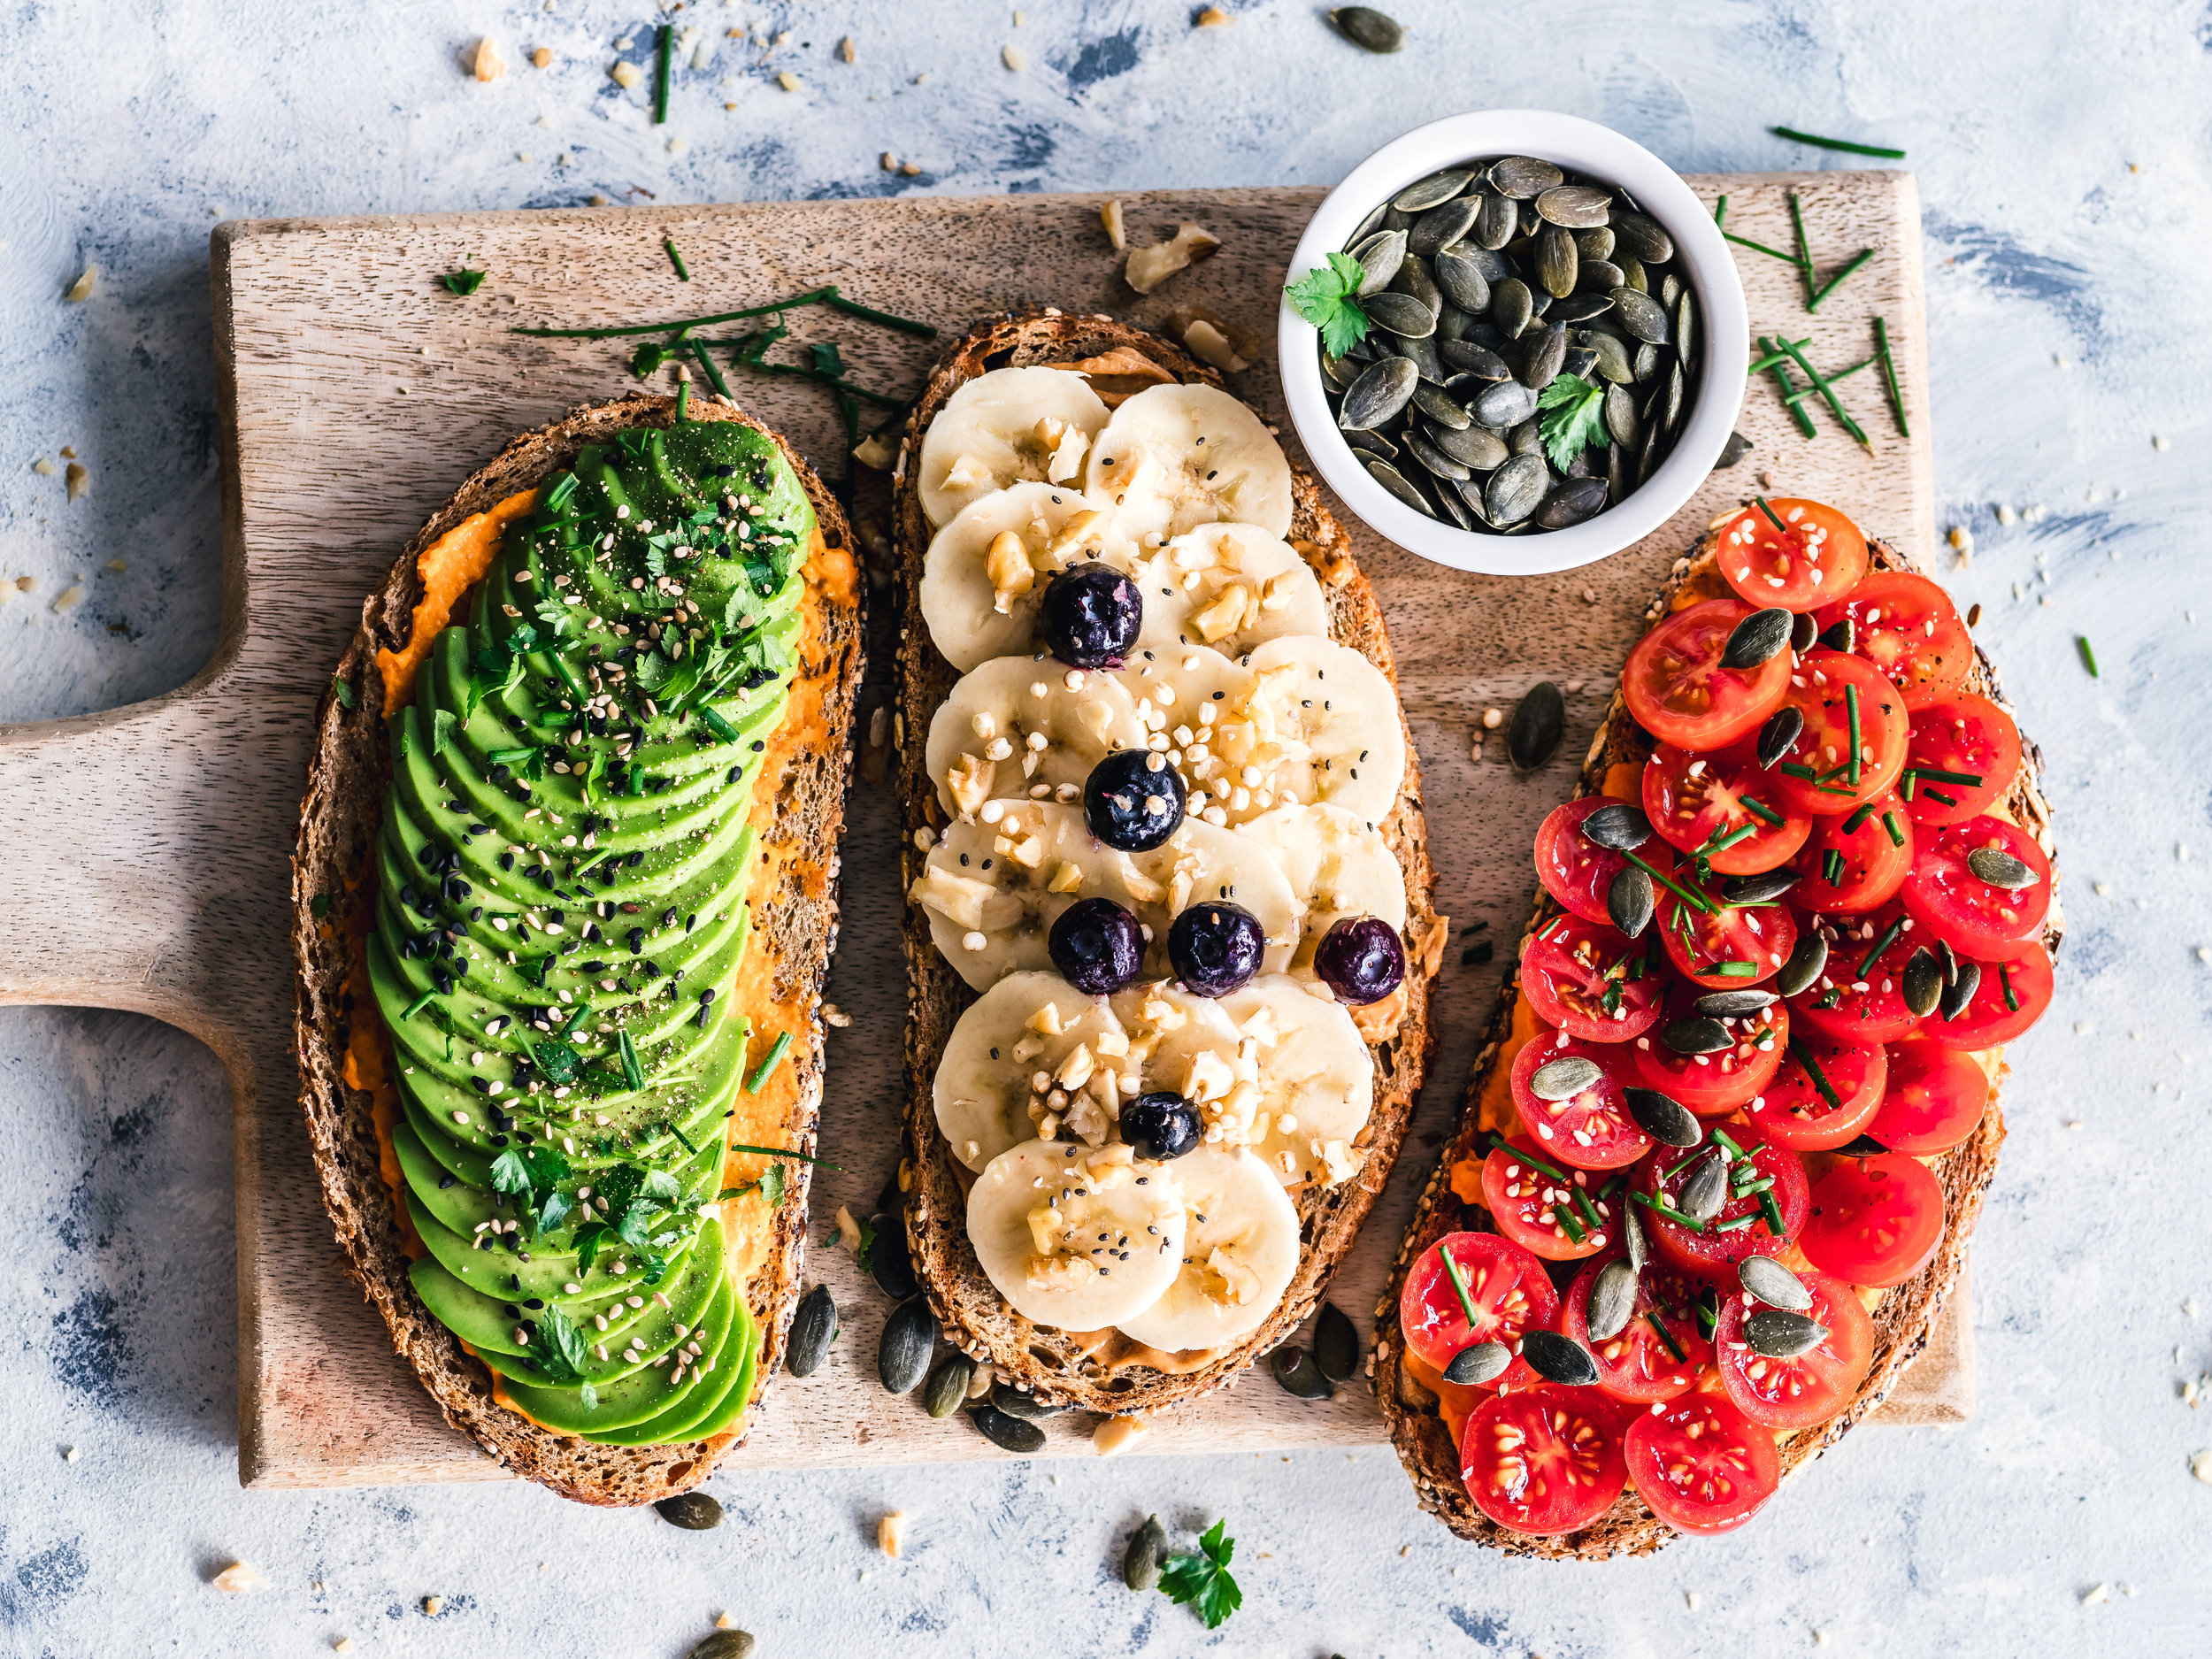 Plant-based diet - 3 kinds of toast